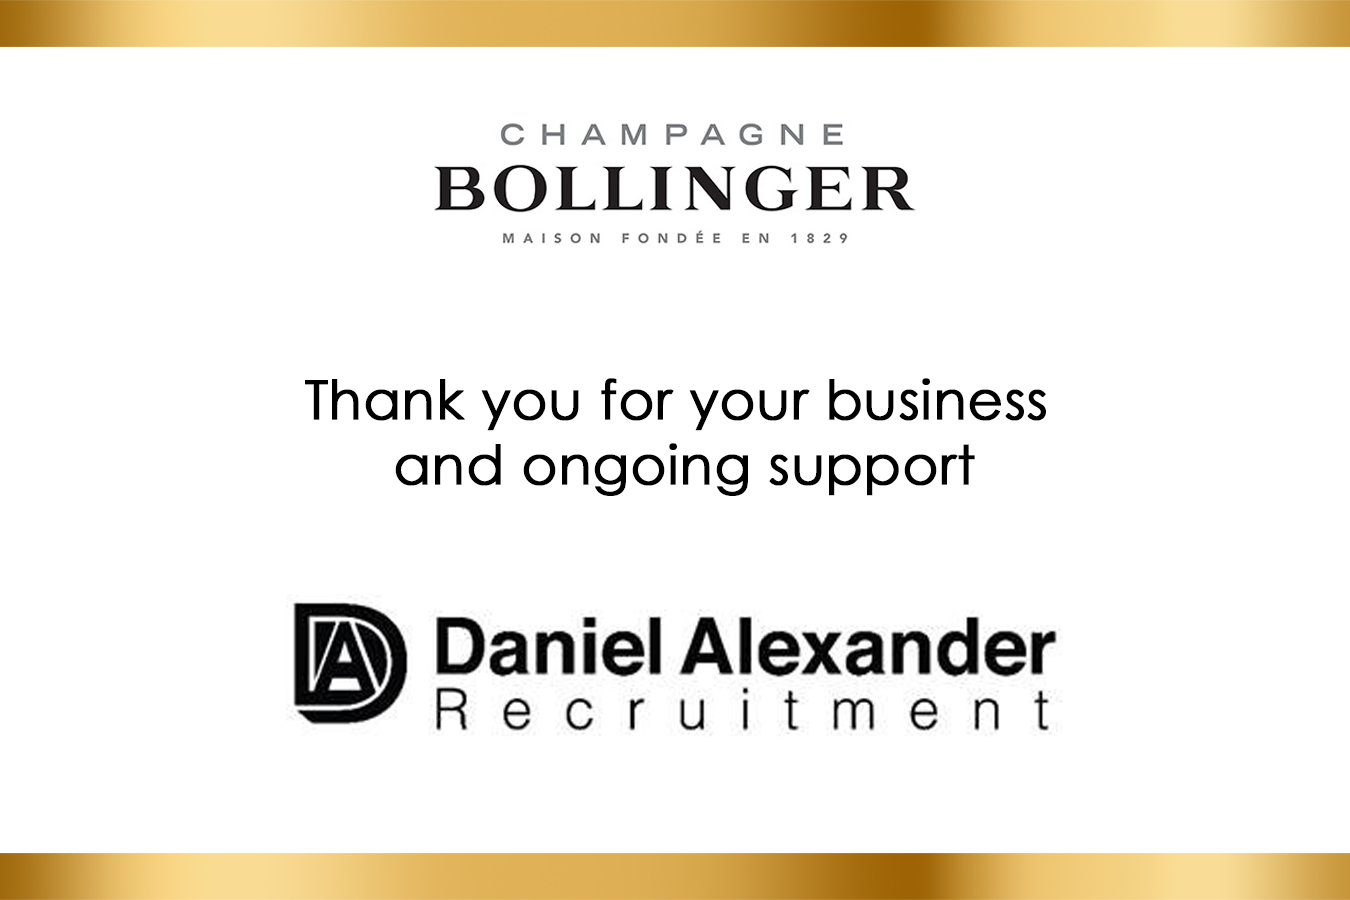 Recruiter Bollinger Champagne Label